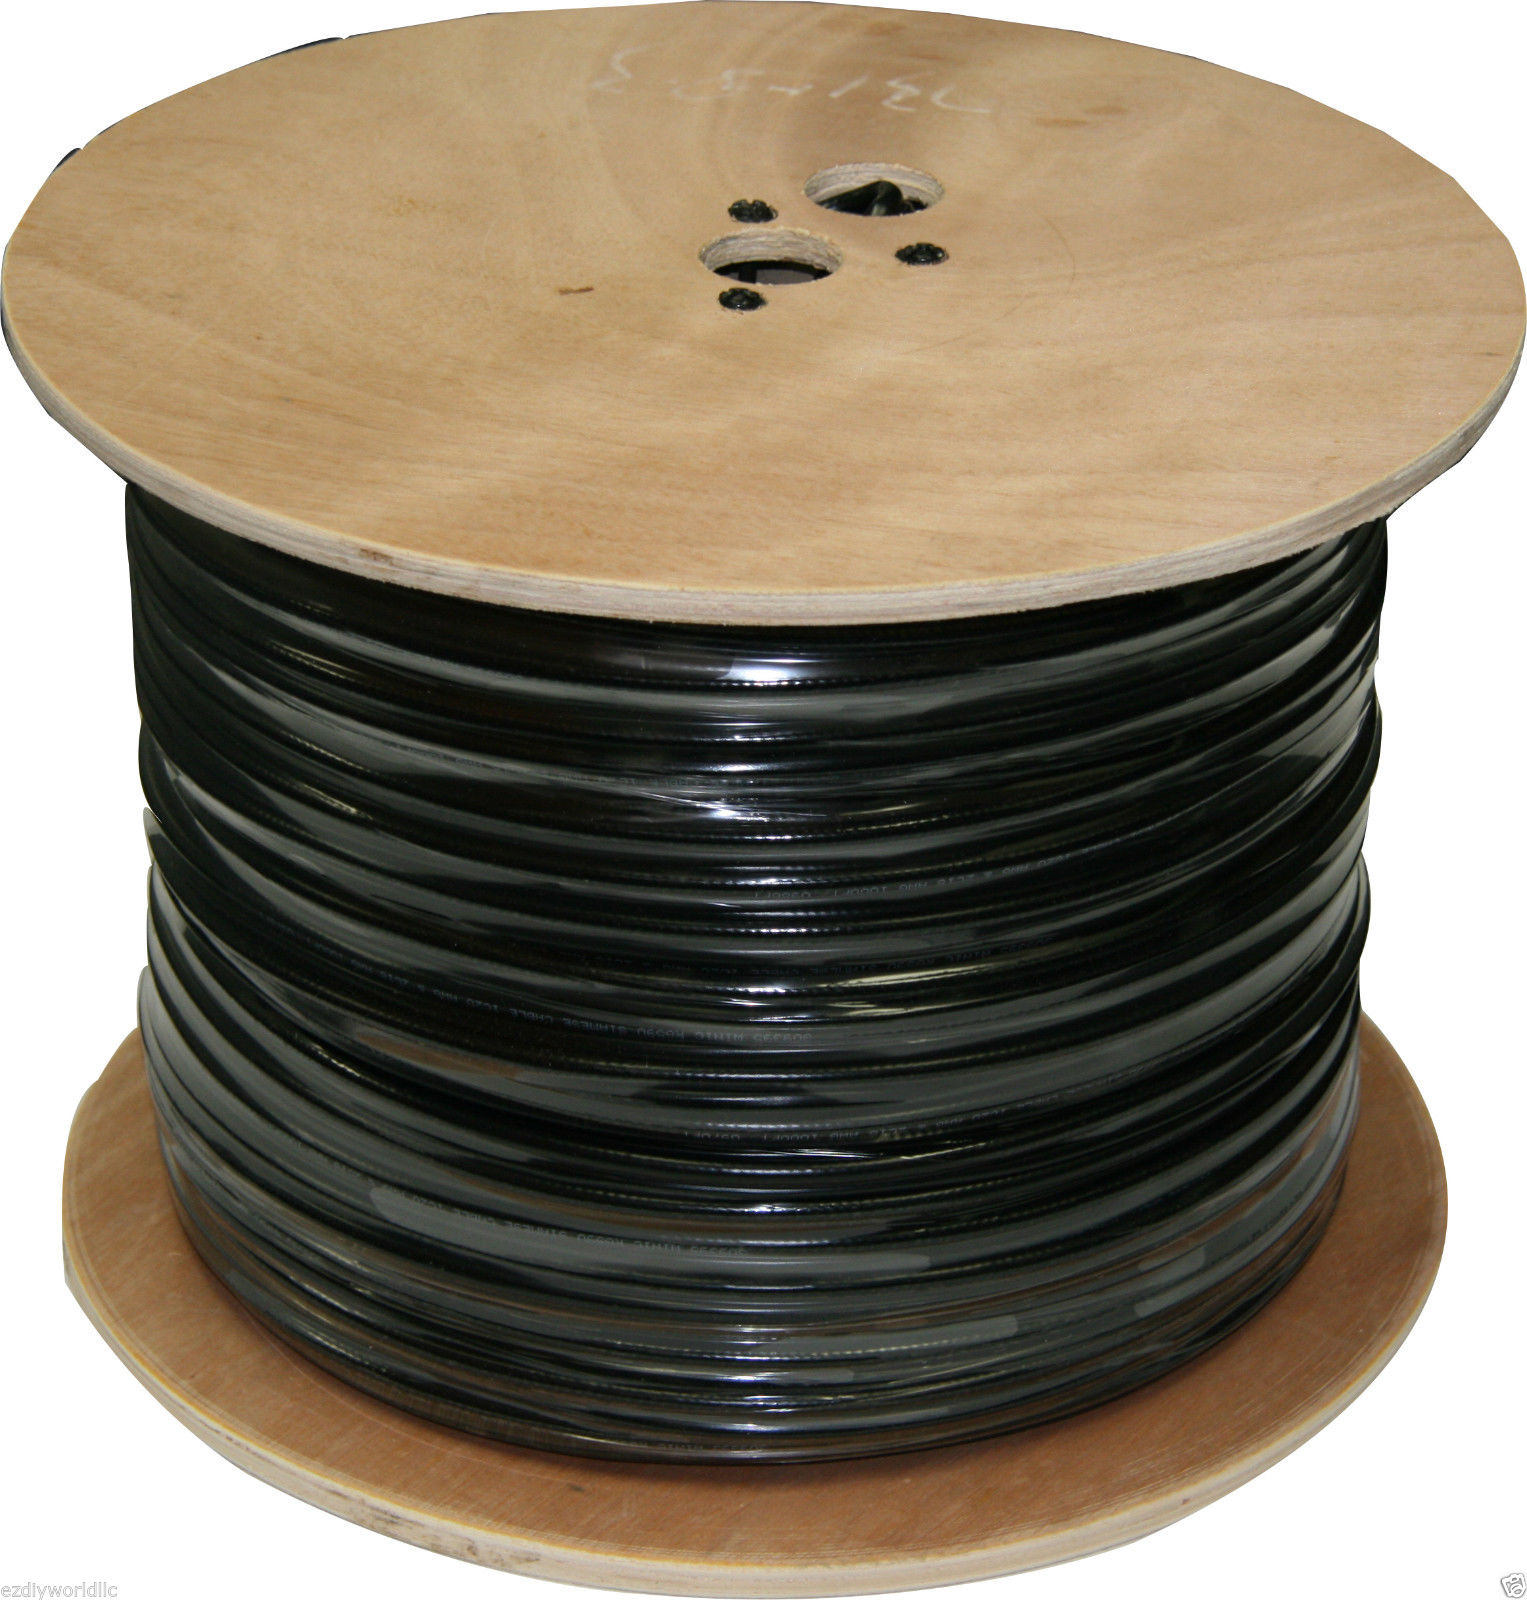 Solid Copper Core 1000FT RG59 Siamese Cable 18/2 Wire 95% BraidW